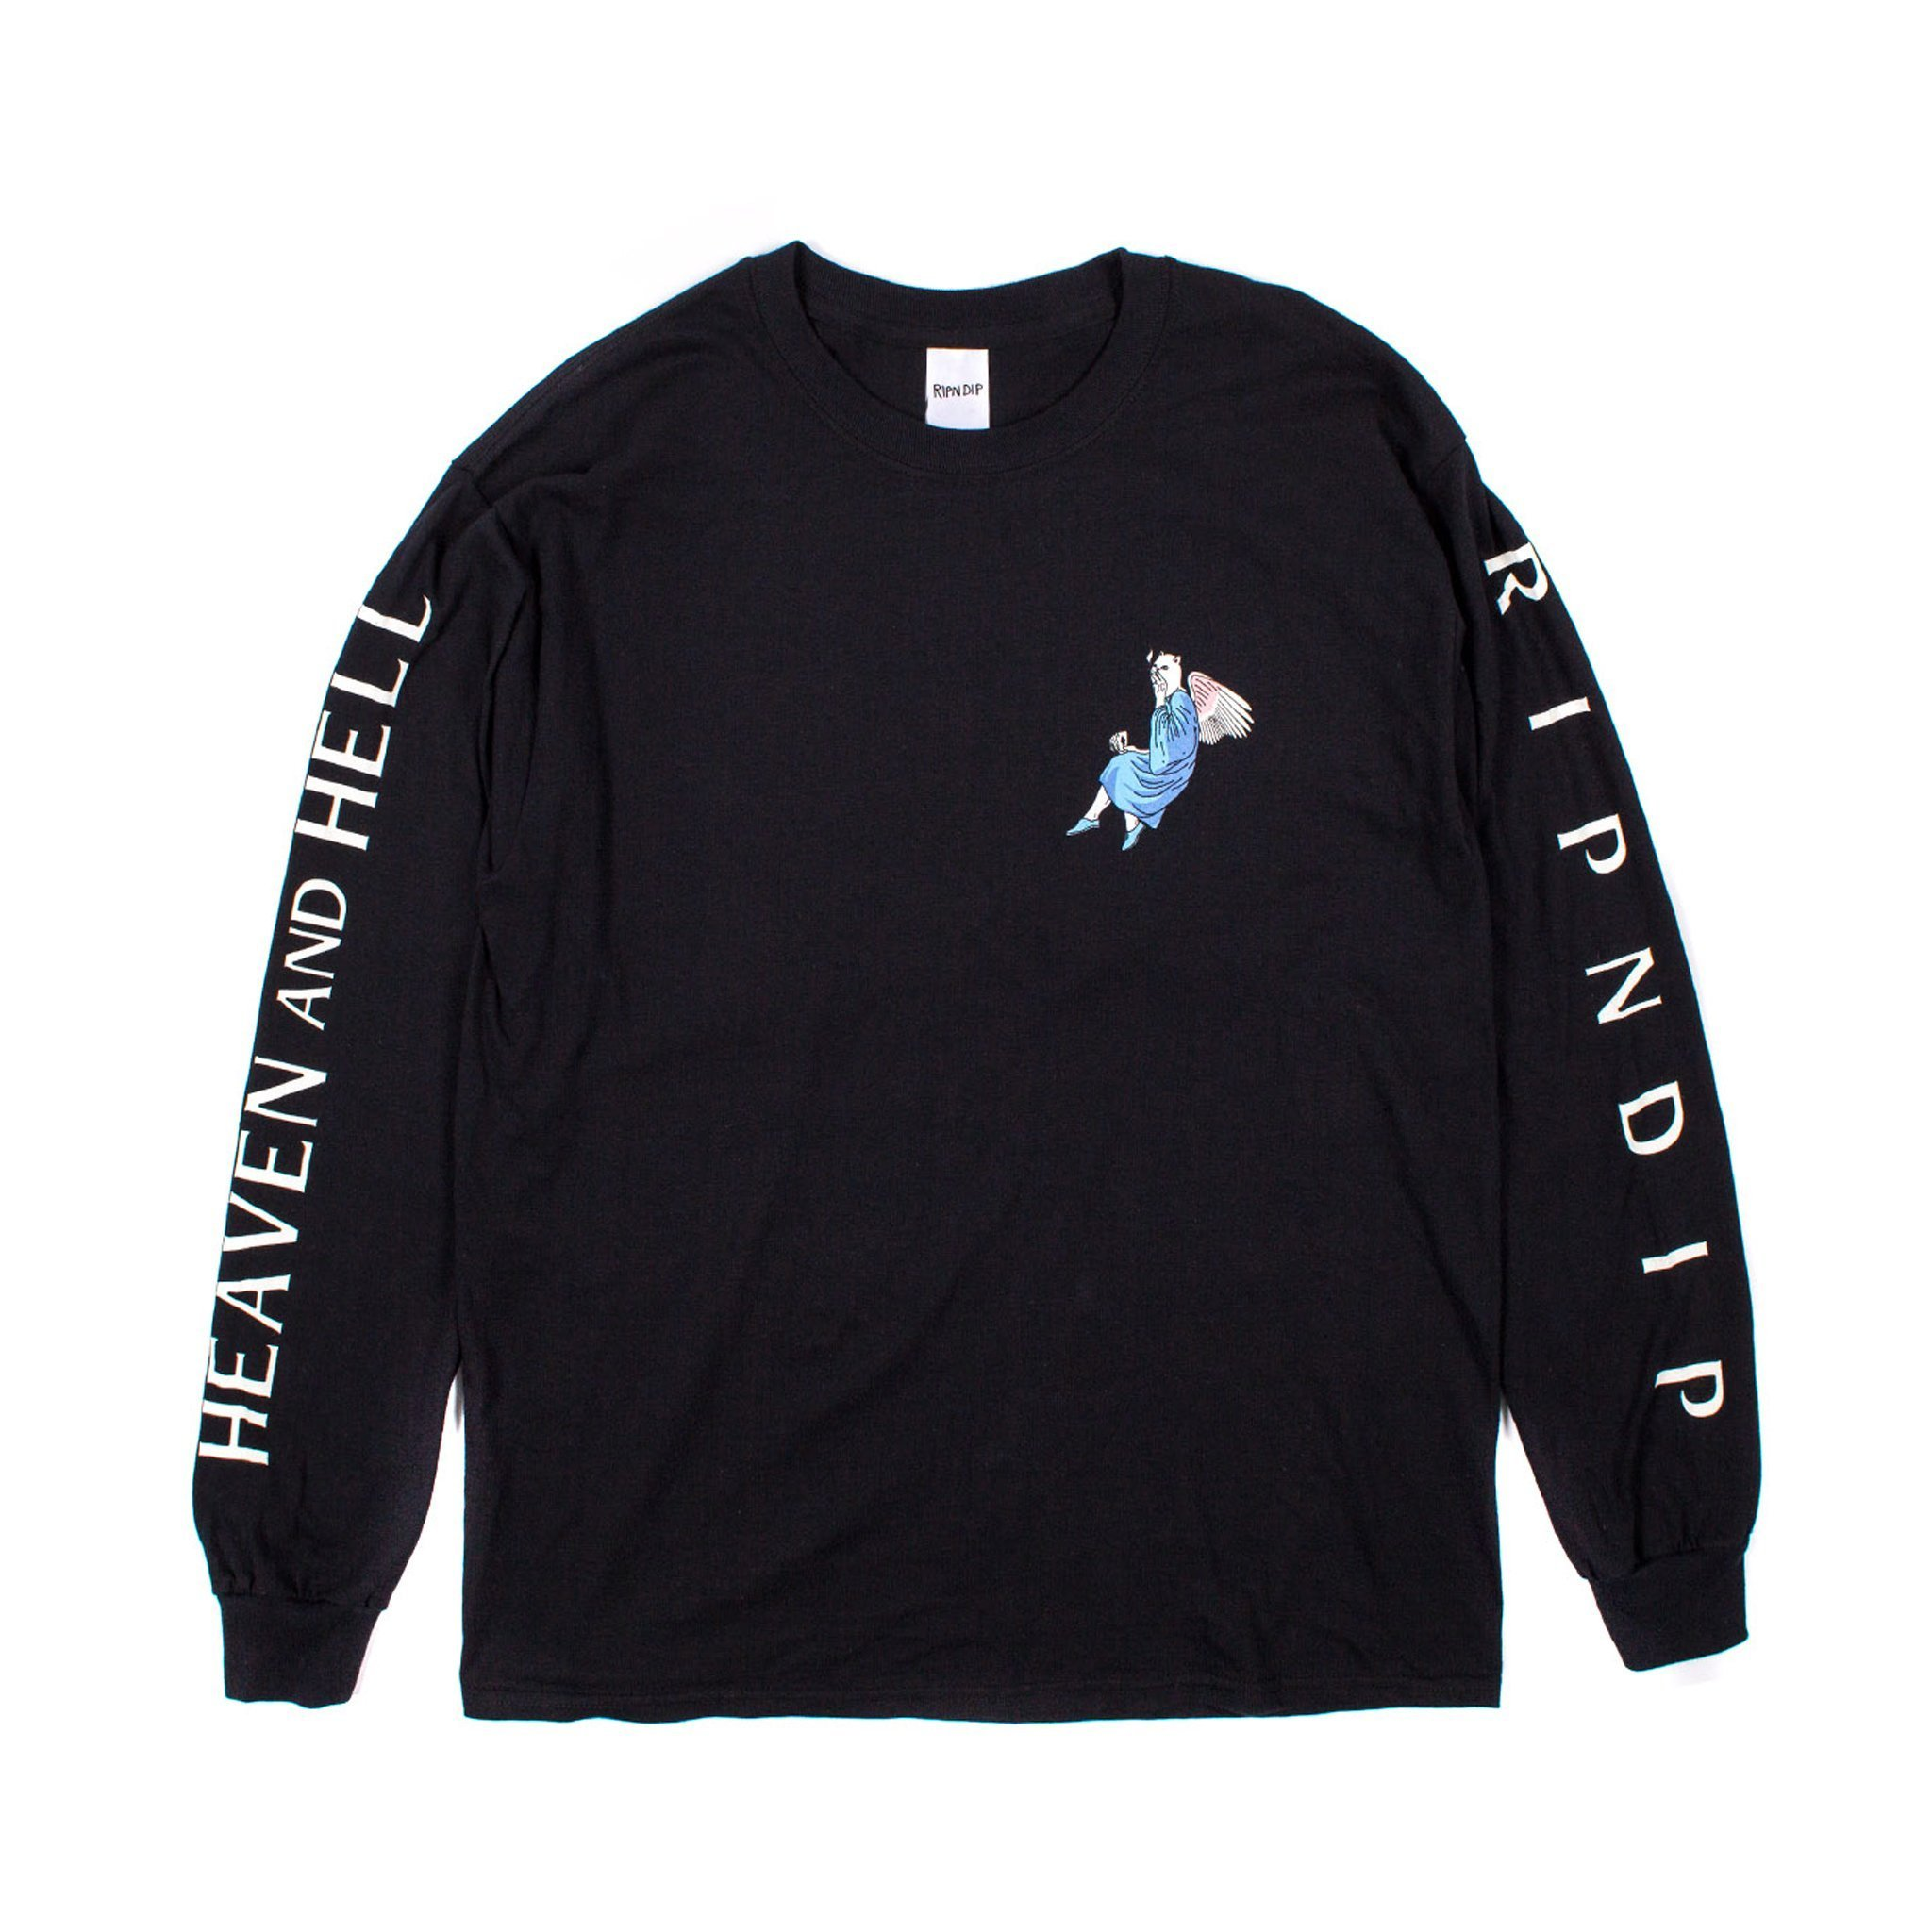 17AW新作 RIPNDIP HEAVEN AND HELL L/S カットソー